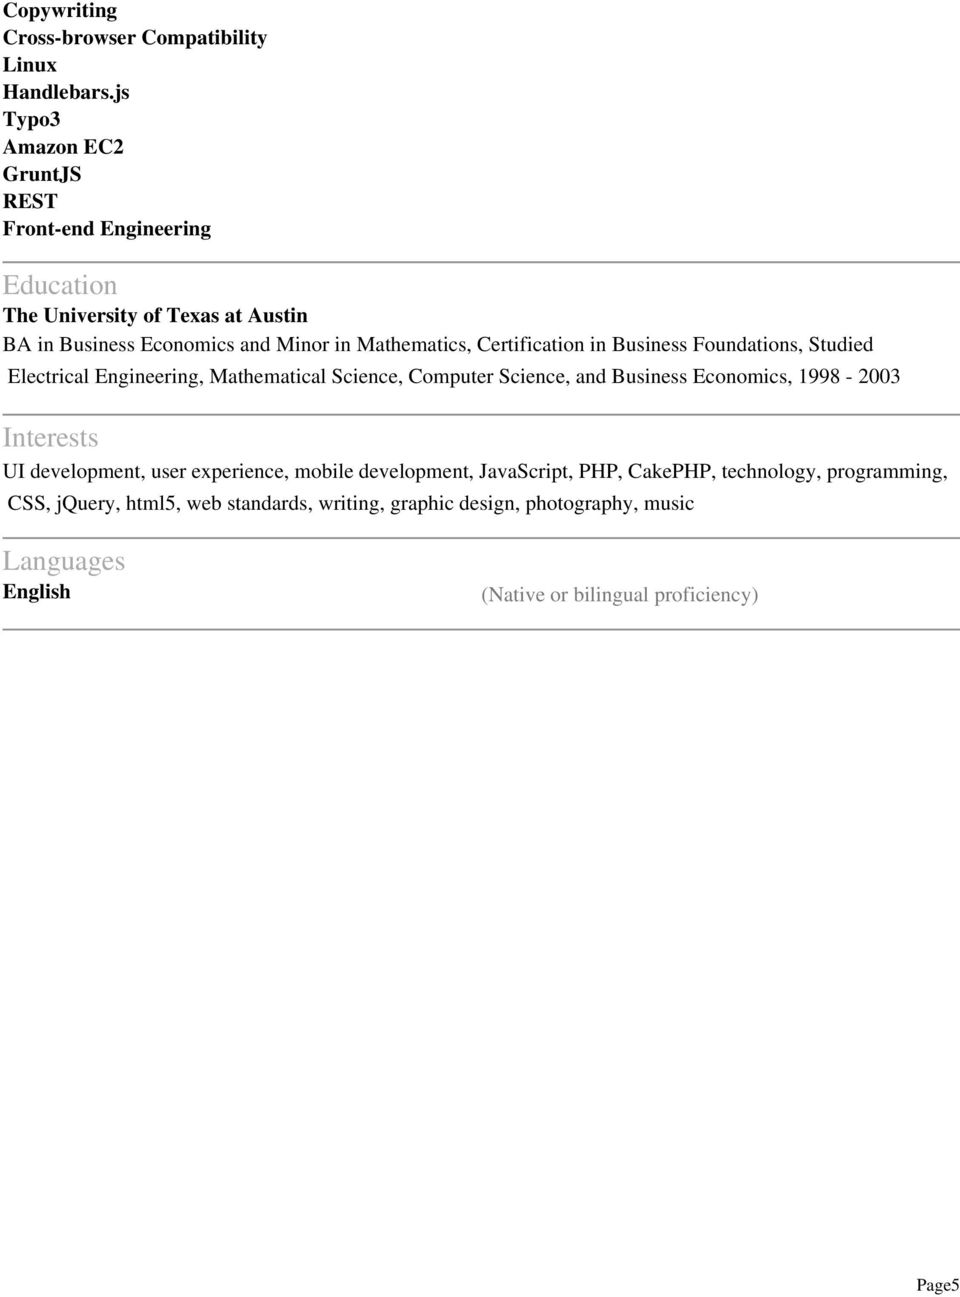 Certification in Business Foundations, Studied Electrical Engineering, Mathematical Science, Computer Science, and Business Economics, 1998-2003